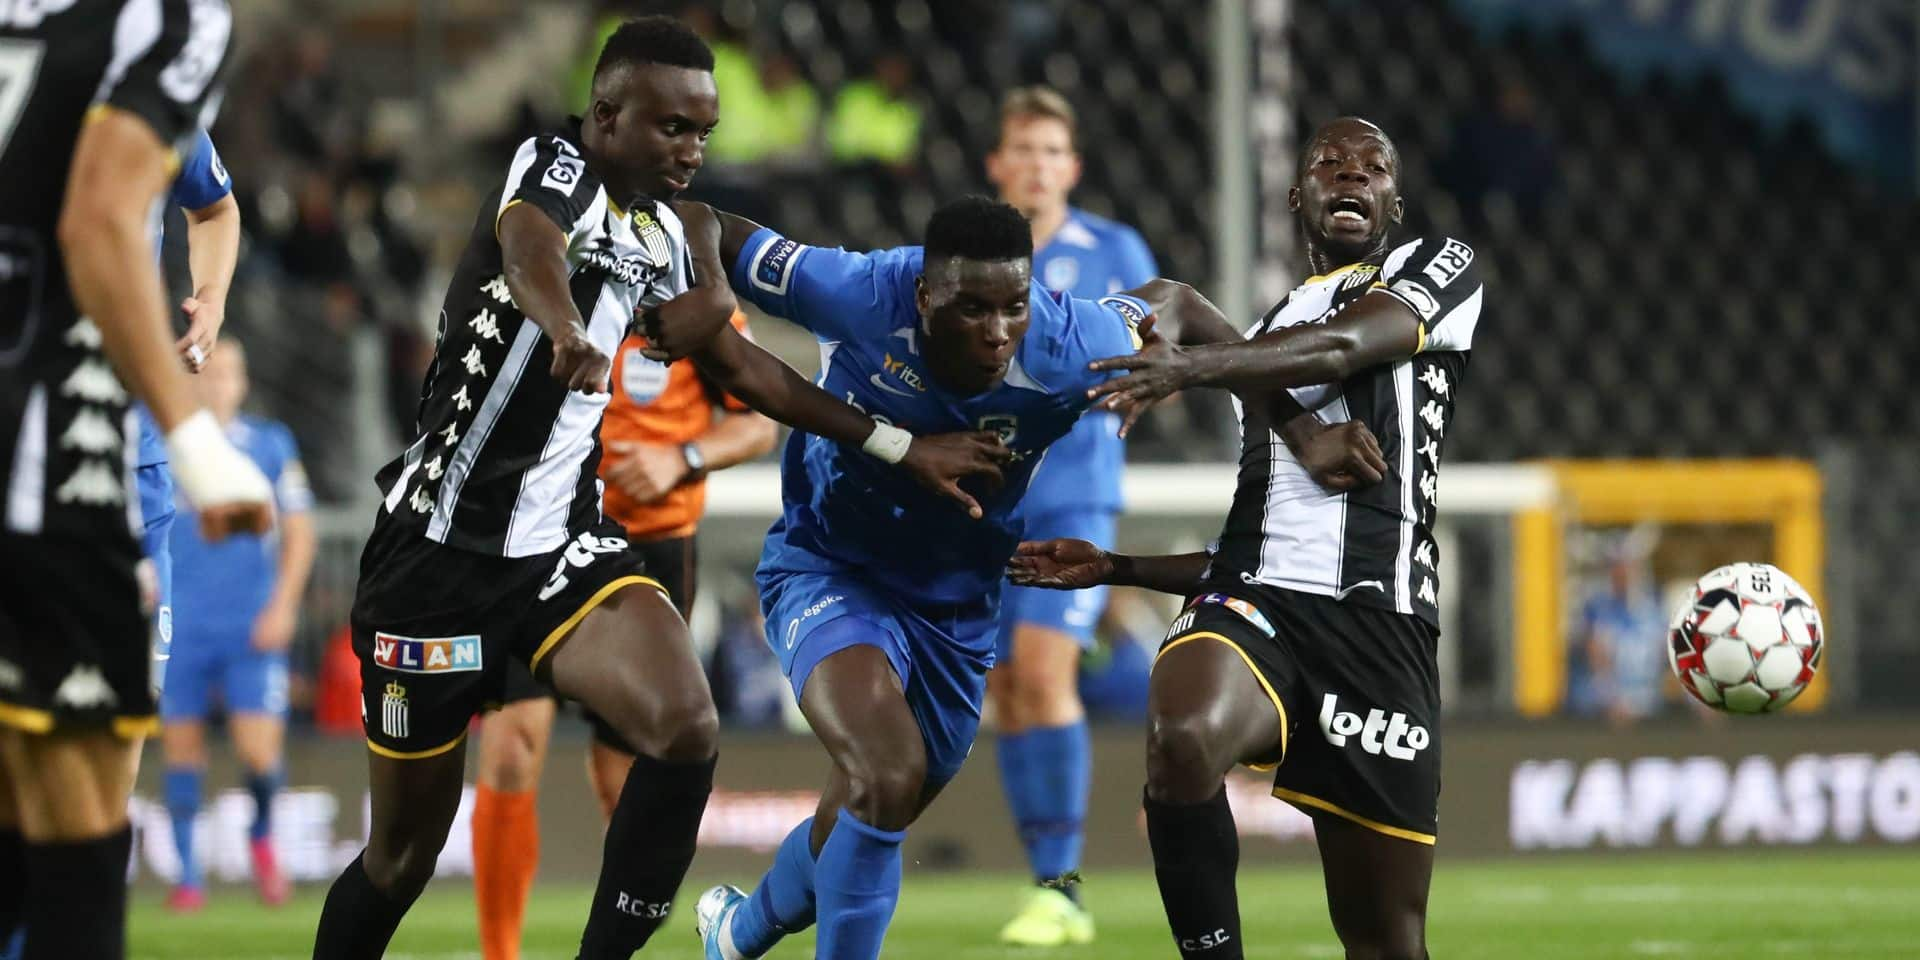 Charleroi's Modou Diagne, Genk's Paul Onuachu and Charleroi's Cristophe Diandy fight for the ball during a soccer match between Sporting Charleroi and Krc Genk, Friday 13 September 2019 in Charleroi, on the seventh day of the 'Jupiler Pro League' Belgian soccer championship season 2019-2020. BELGA PHOTO VIRGINIE LEFOUR